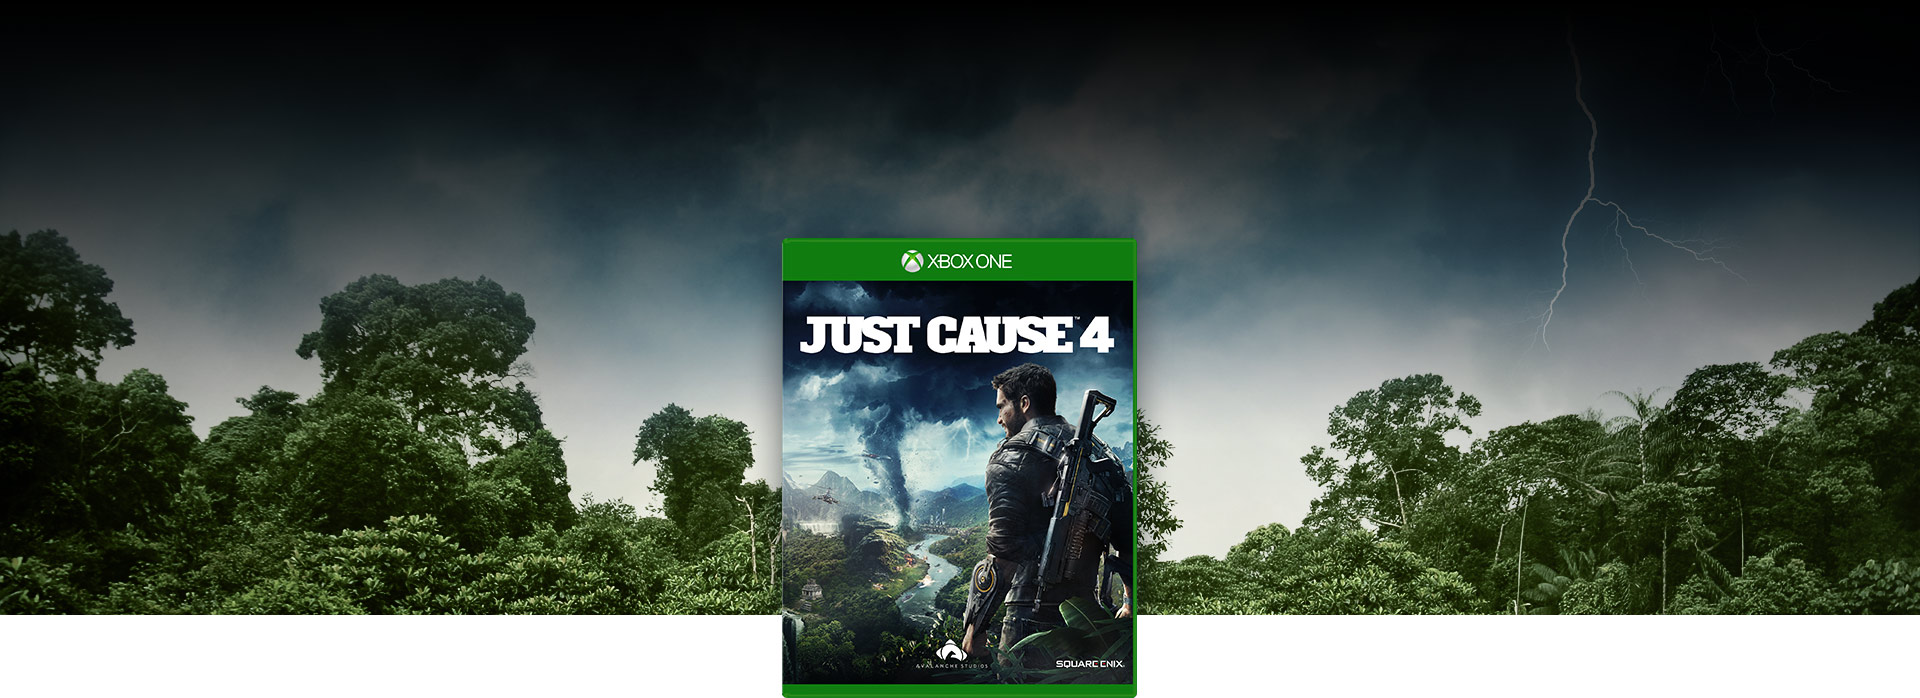 Just Cause 4 boxshot, Background of a forest with lightning and dark clouds above